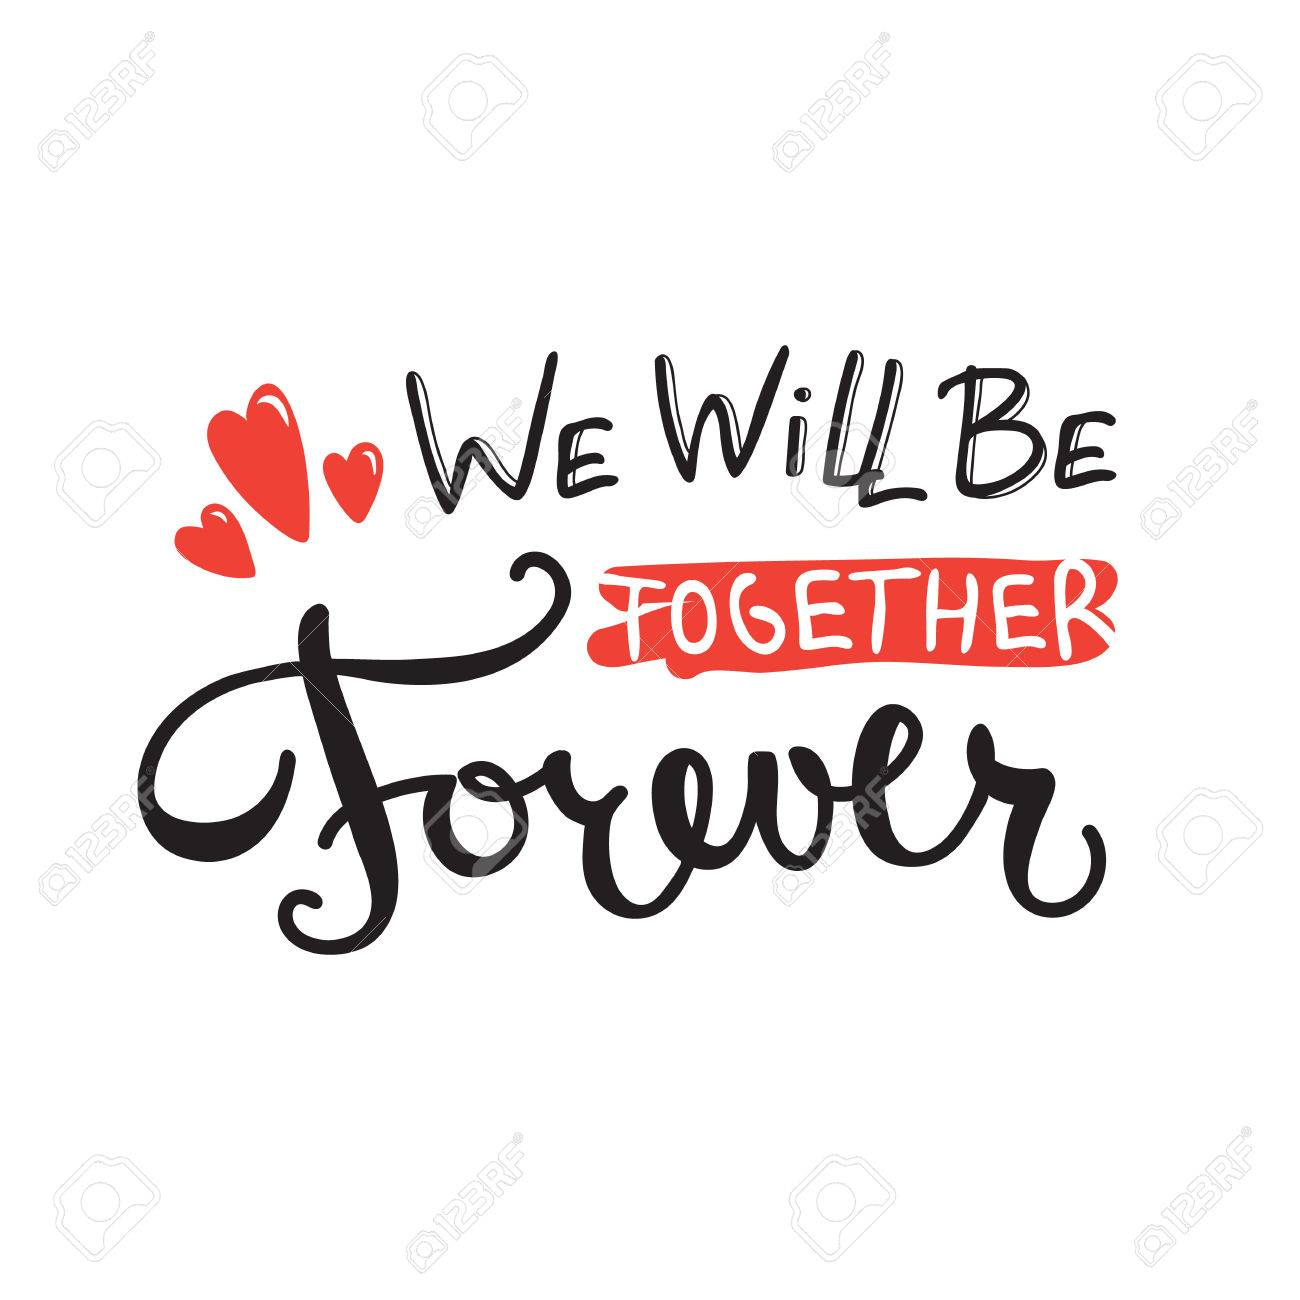 We will be together 10